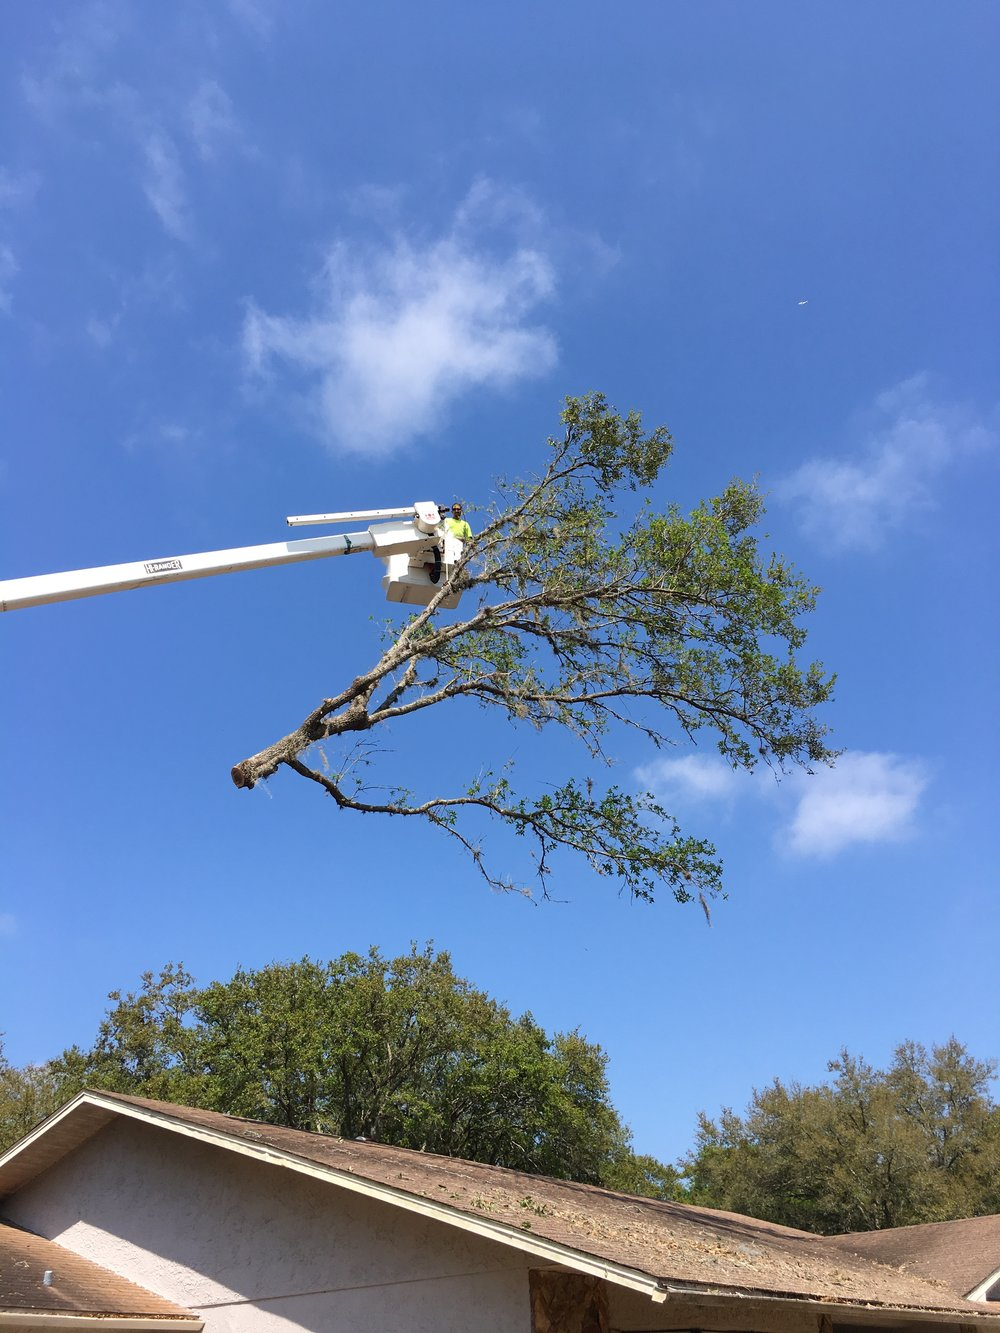 Some trees and rot leaving your home vulnerable to tree damage. Let us take a look and provide you with a free no-obligation estimate.